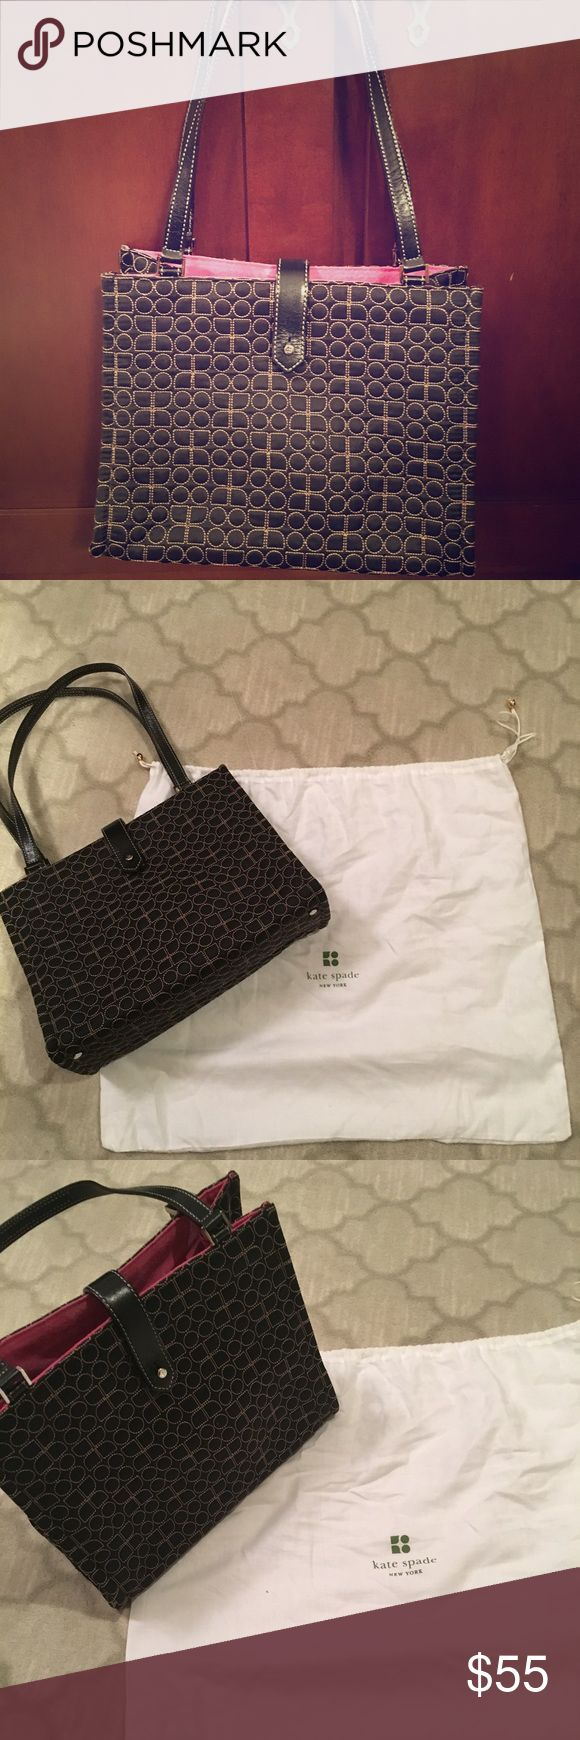 Kate Spade Noel Dot Signature Shoulder Bag Kate Spade Noel Dot Signature Shoulder Bag that is black and white on the exterior and has a pink lining. Features button enclosure, protective metal feet, and interior pockets. This is an excellent neutral piece for your collection that is a great everyday shoulder bag! In like new condition. kate spade Bags Shoulder Bags